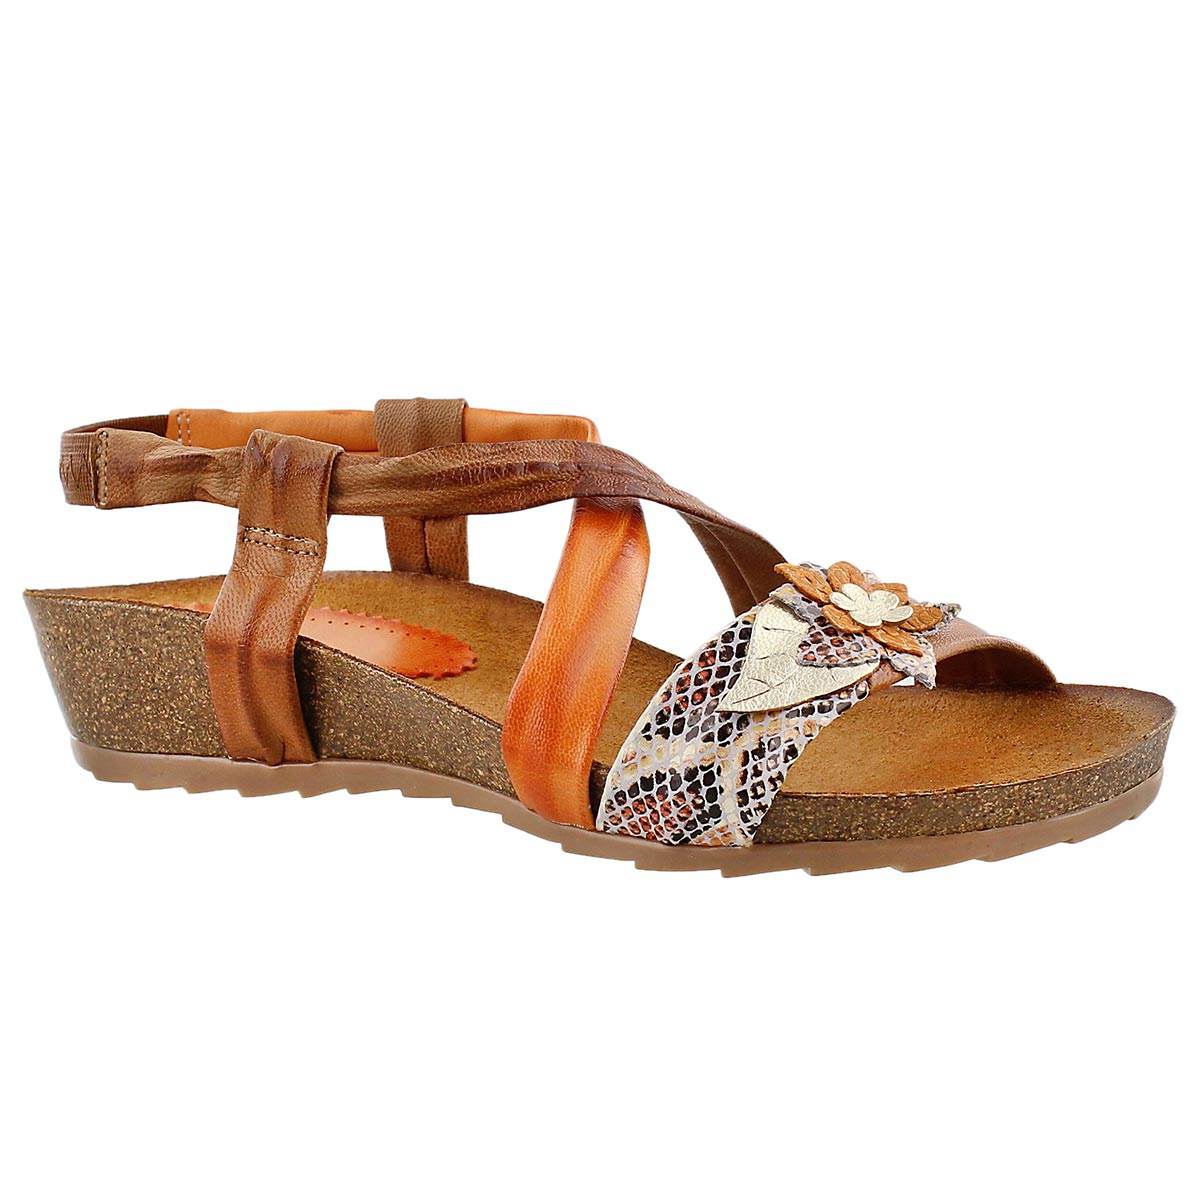 Lds Madison tan casual wedge sandal